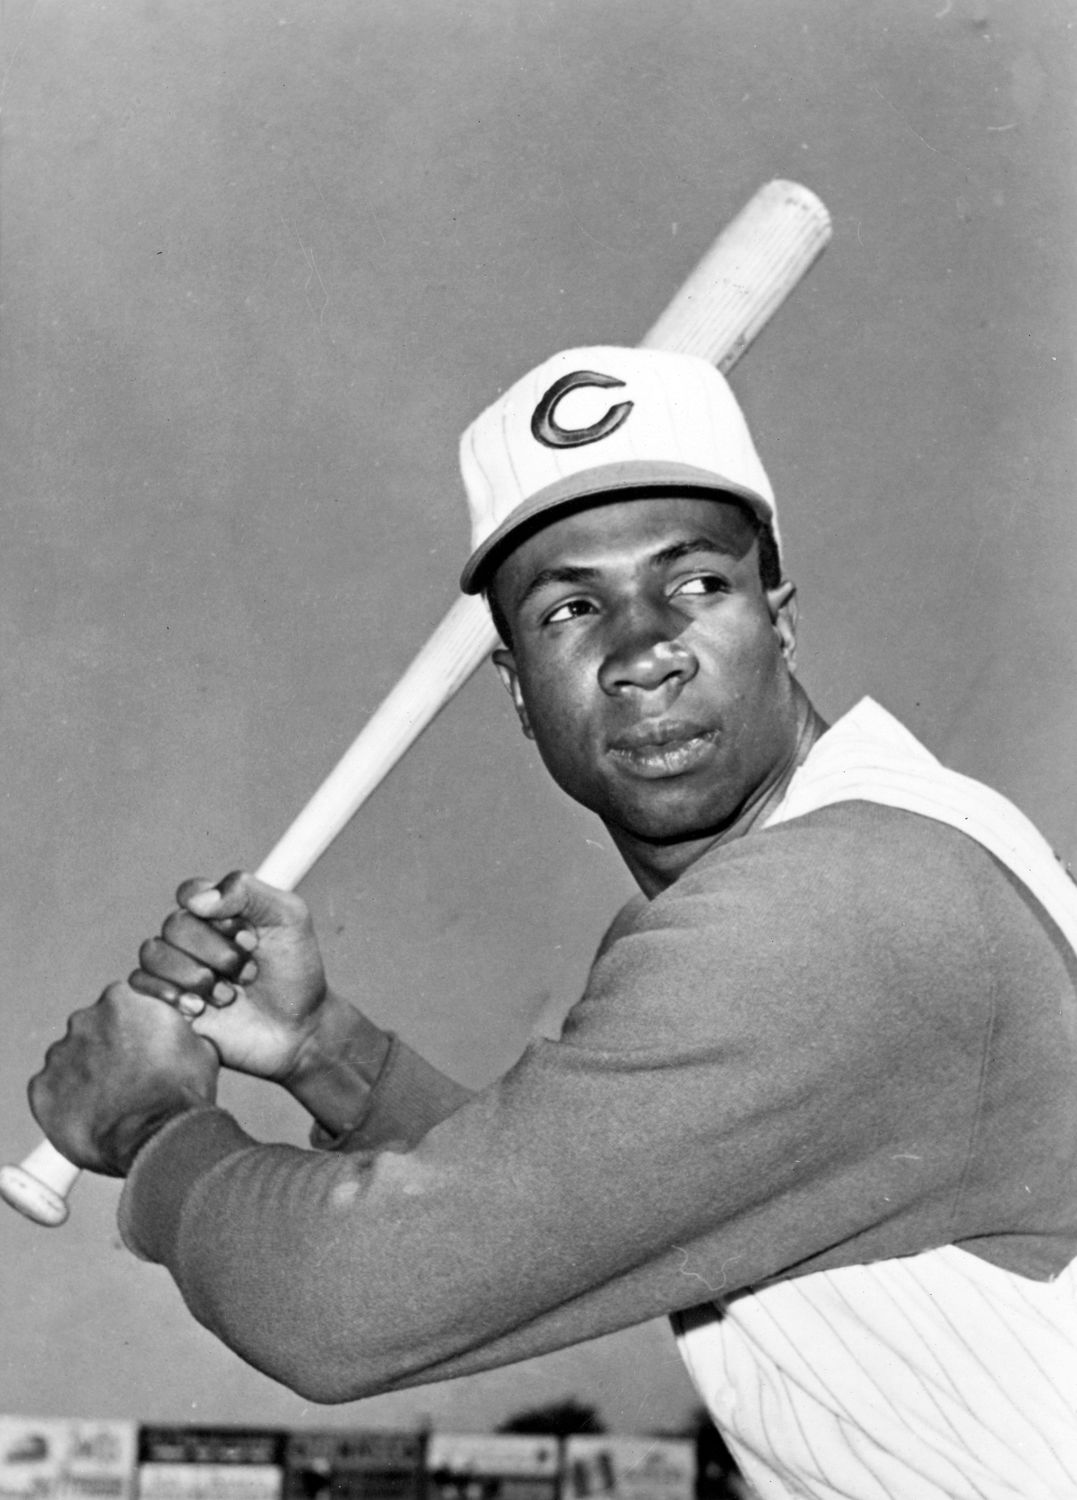 a76d956dc Frank Robinson of the Cincinnati Reds posed with a bat in 1962. BL-366.62  (National Baseball Hall of Fame Library)